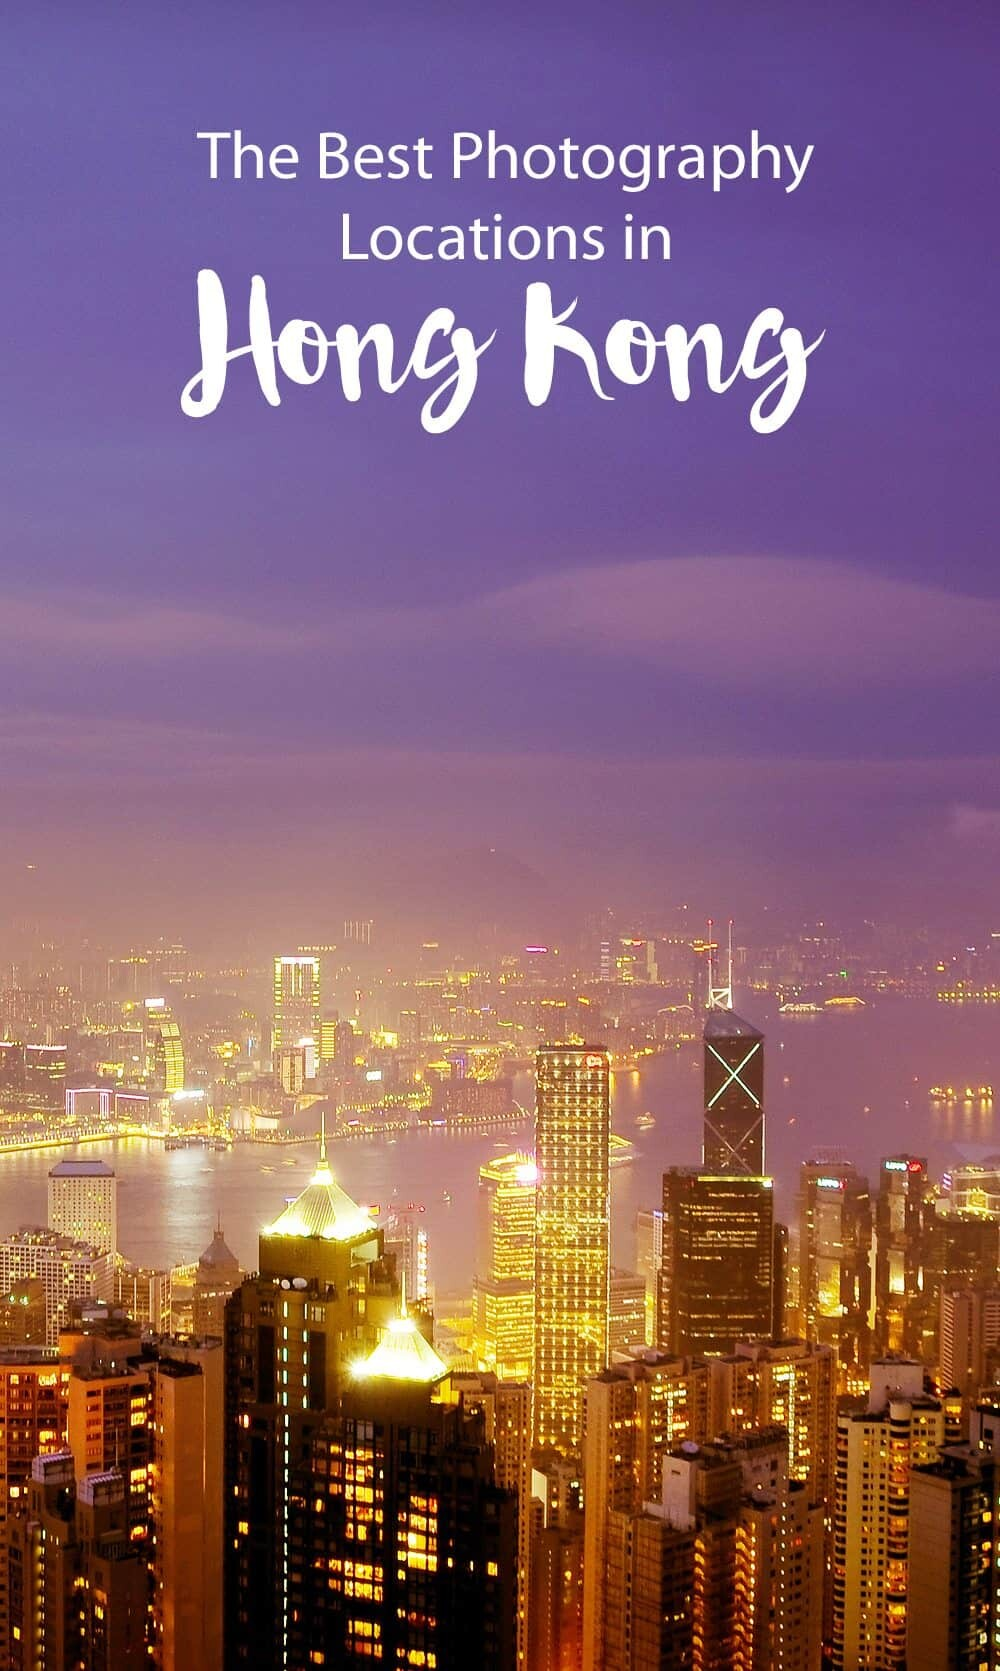 Hong Kong Photo Locations by The Wandering Lens www.thewanderinglens.com